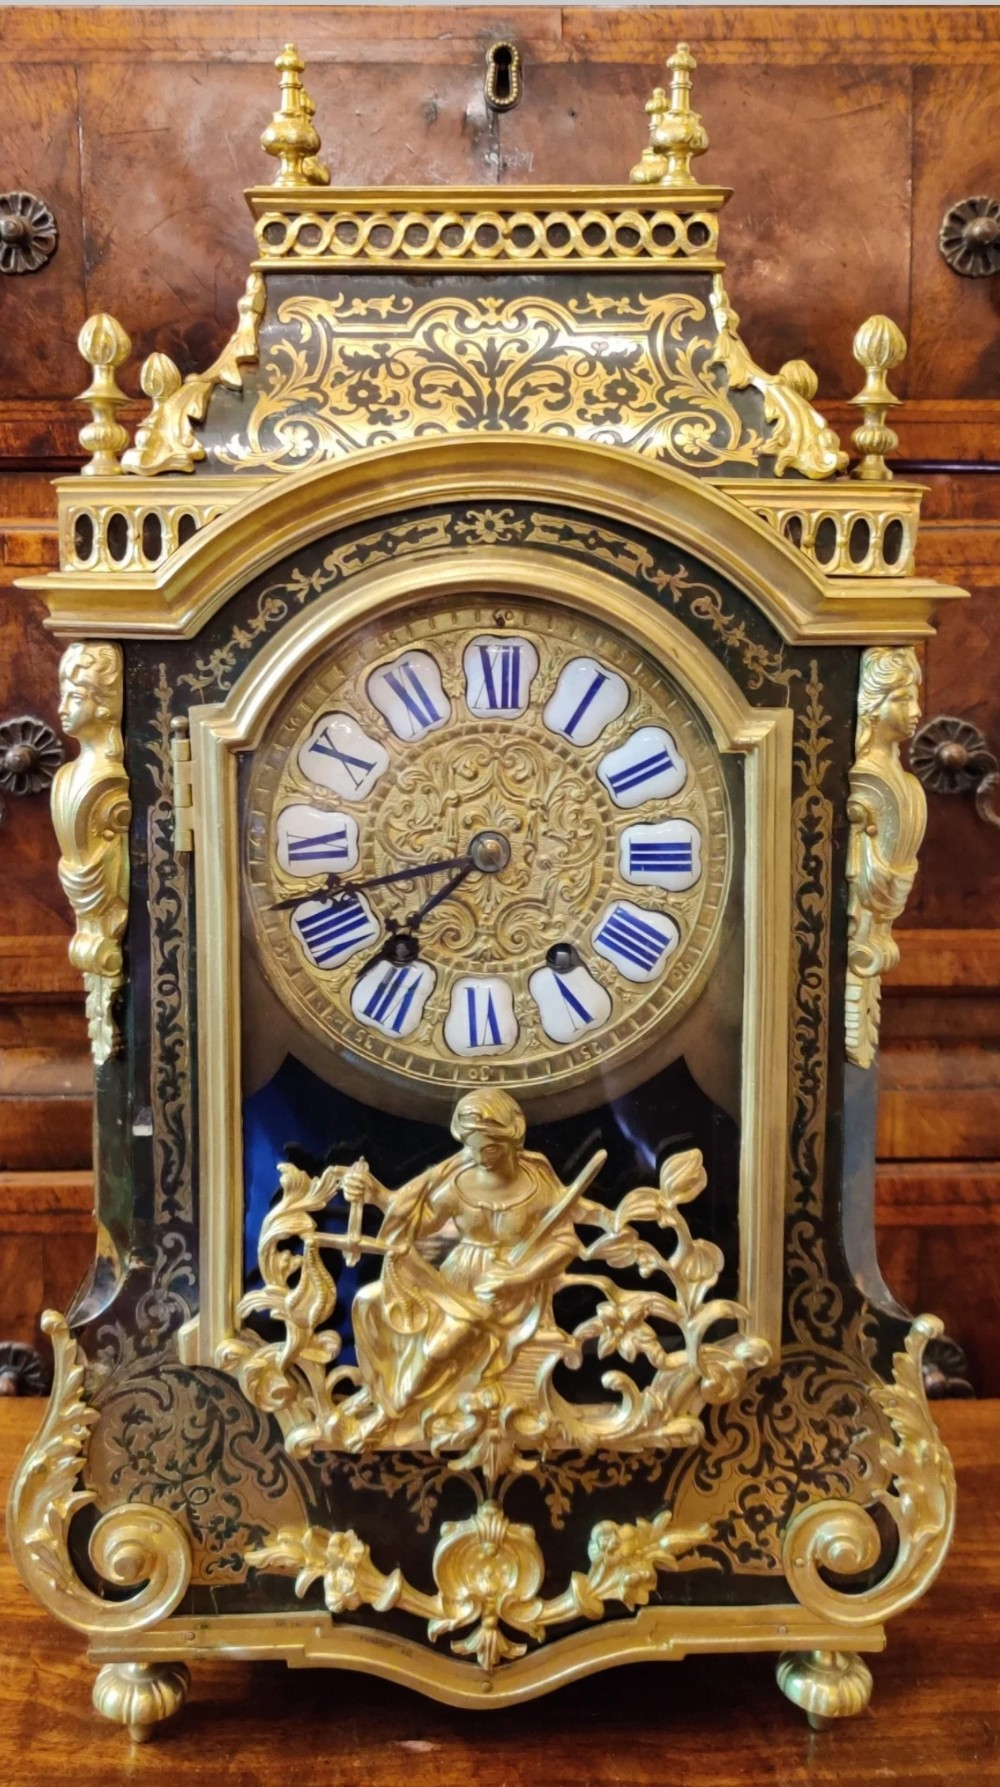 a louis xiv style boulle clock dating to the latenineteenth century